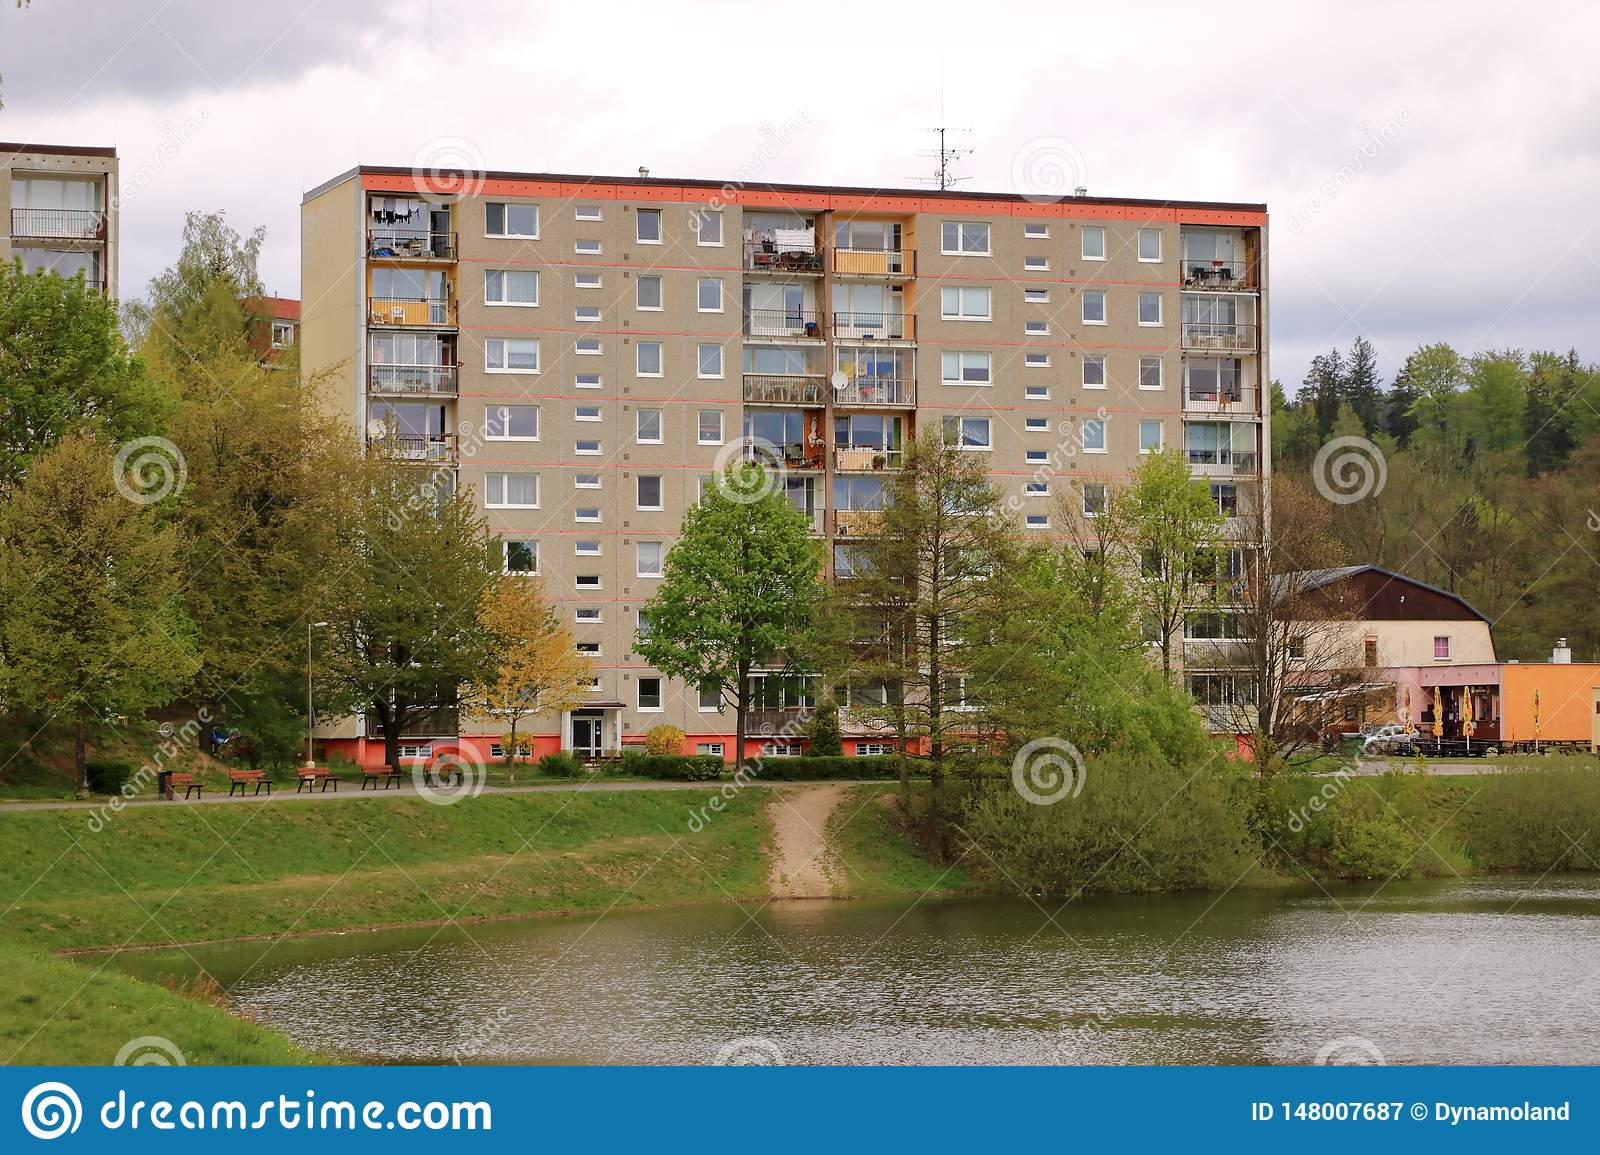 Communist socialist architecture. Architectural detail and pattern of social residential of apartments in Jablonec, Czech Republic